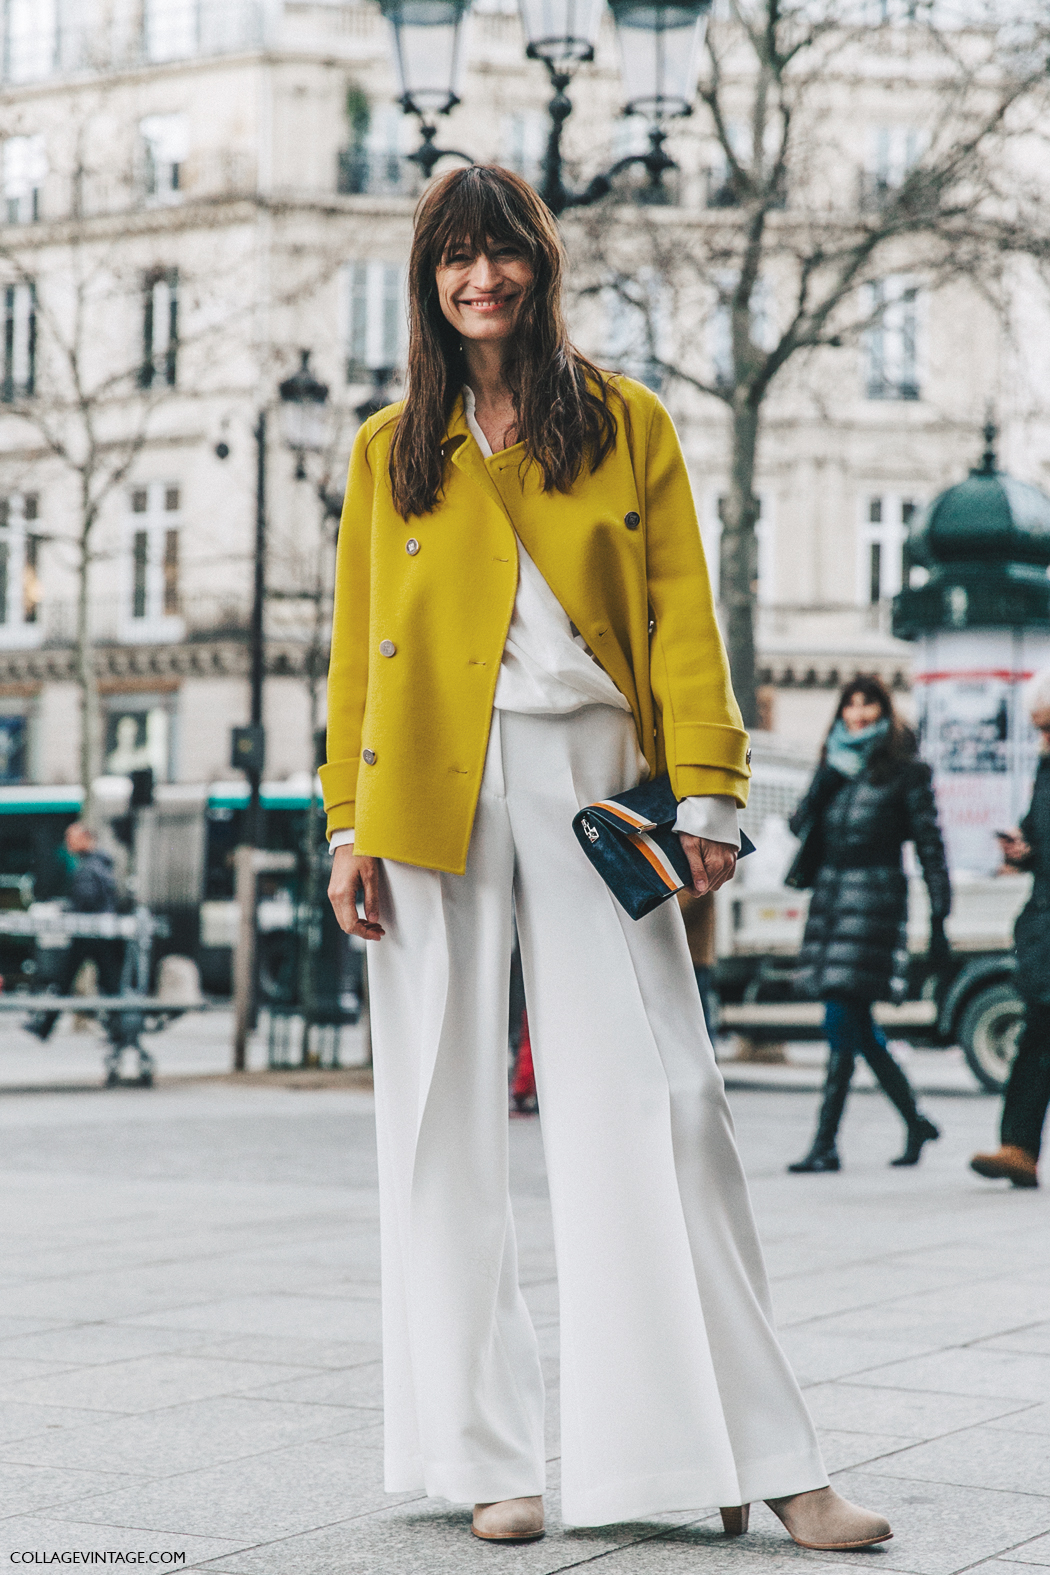 PFW-Paris_Fashion_Week_Fall_2016-Street_Style-Collage_Vintage-Caroline_De_Maigret-Isabel_Marant-Yellow_Blazer-3